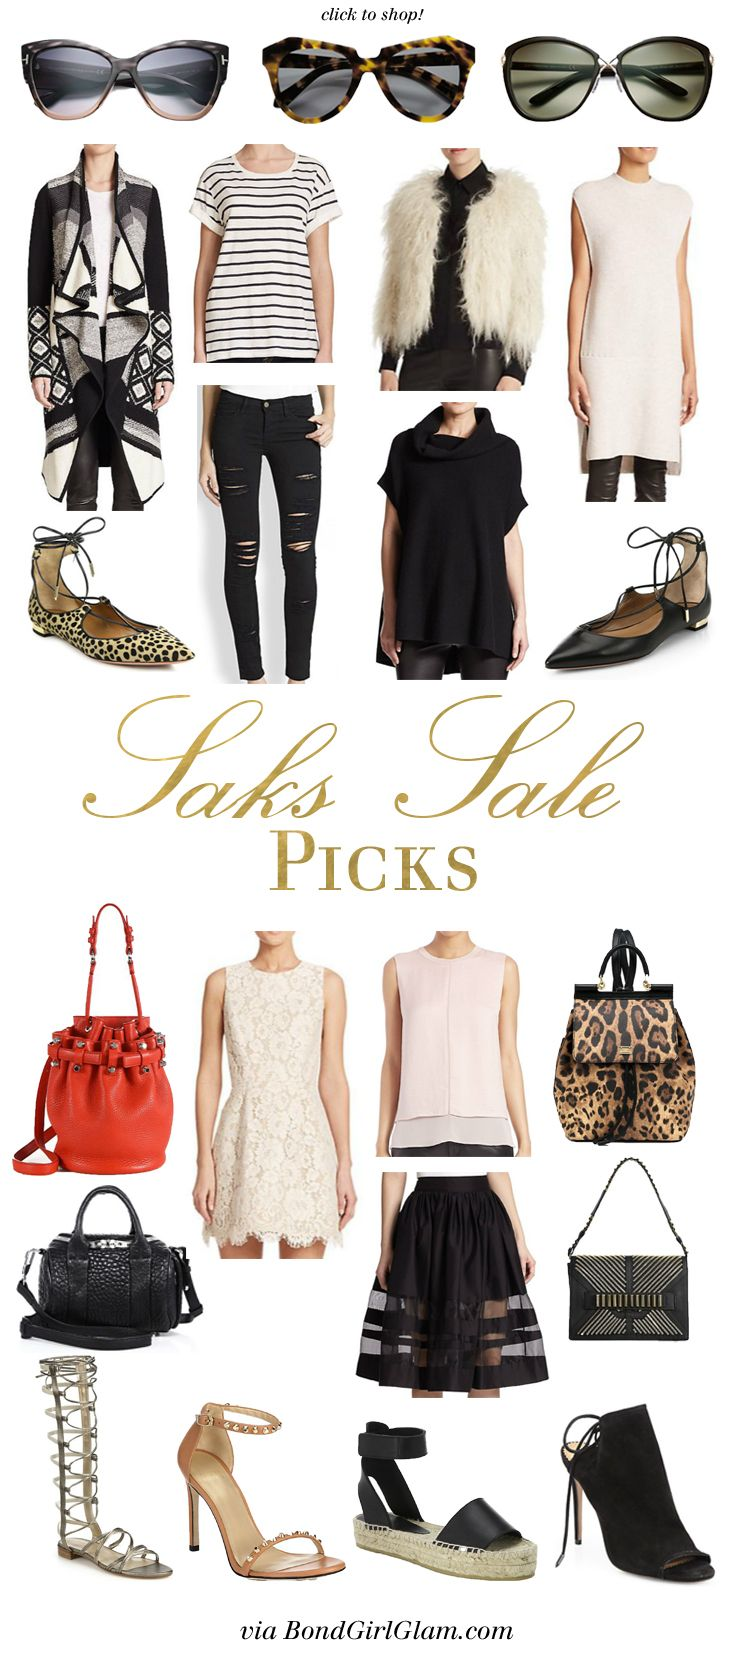 Saks Fifth Avenue Sale Picks | BondGirlGlam.com